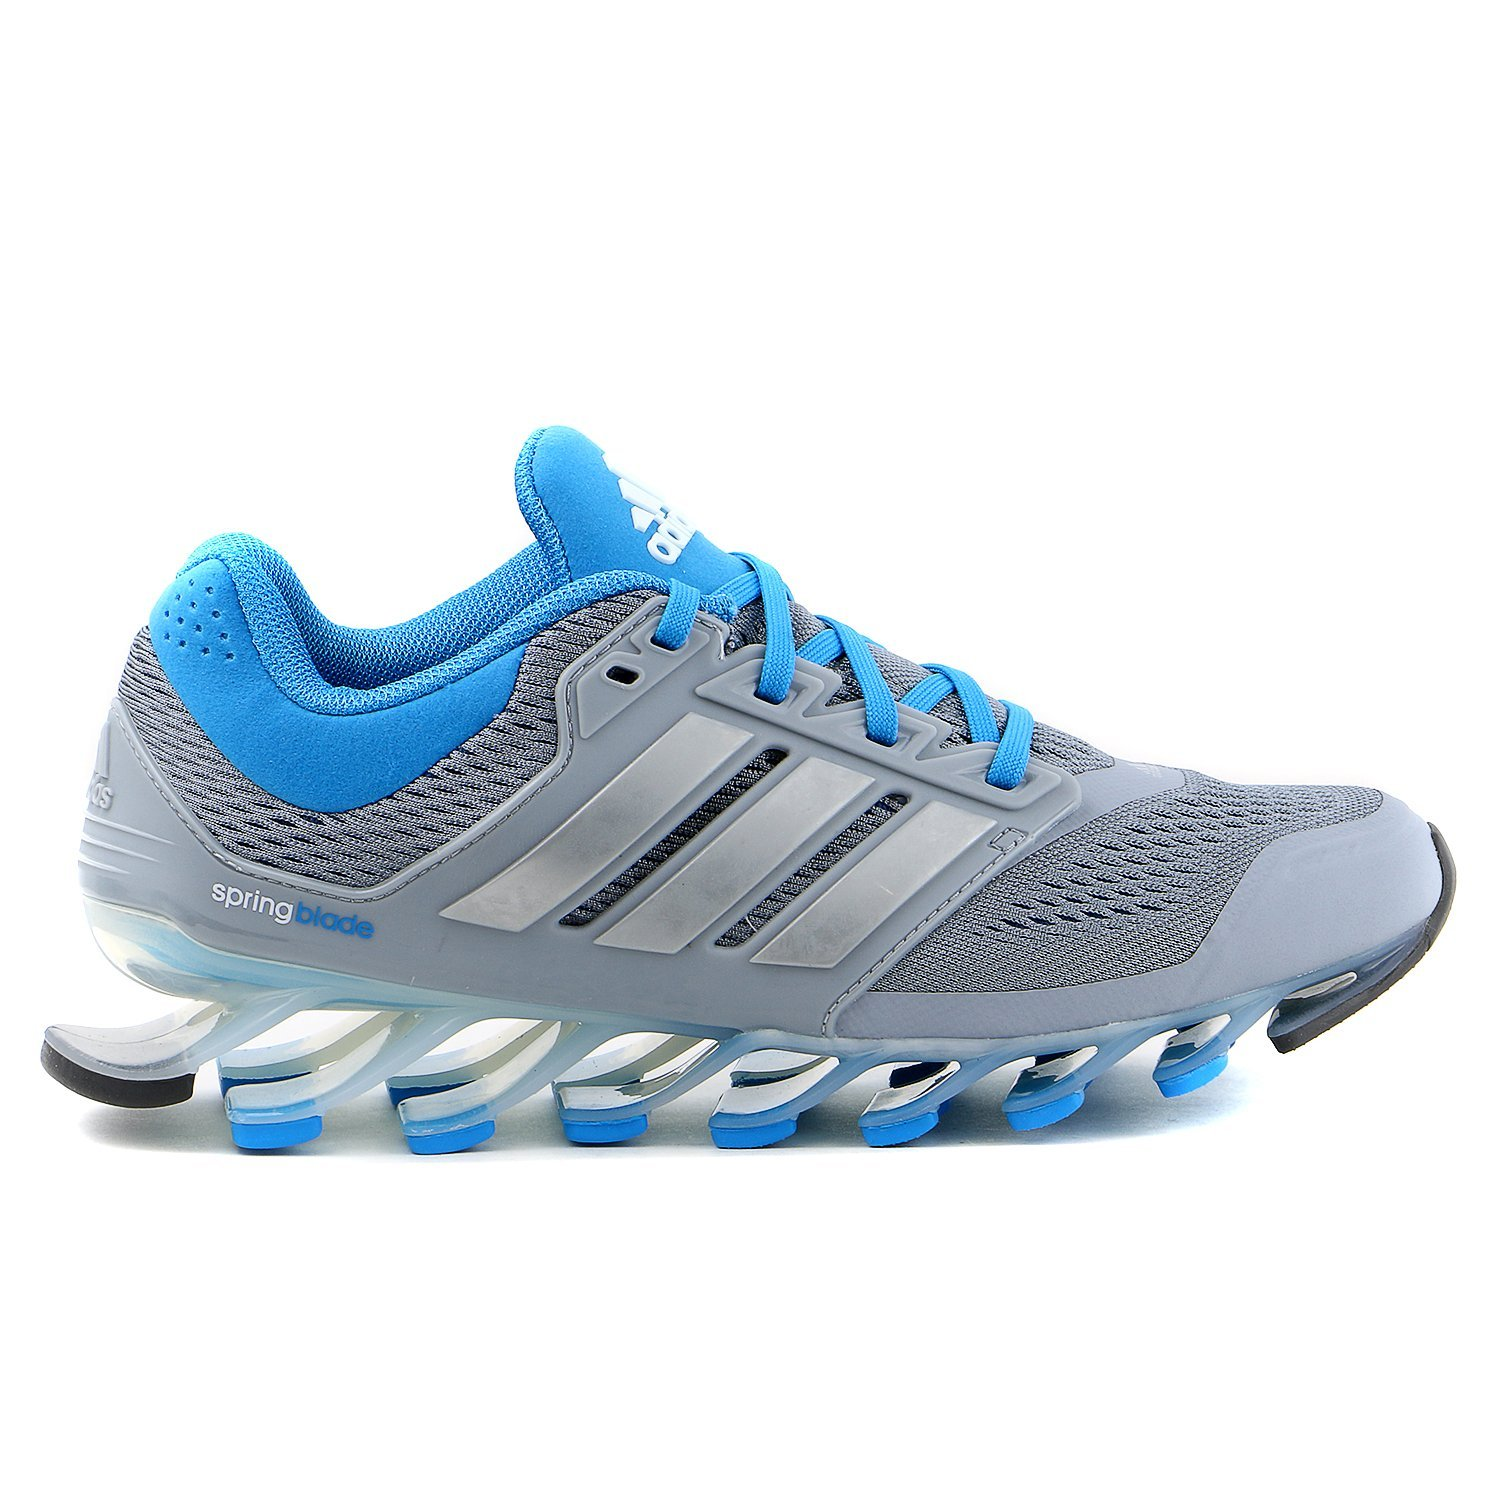 Adidas Running Shoes Deals